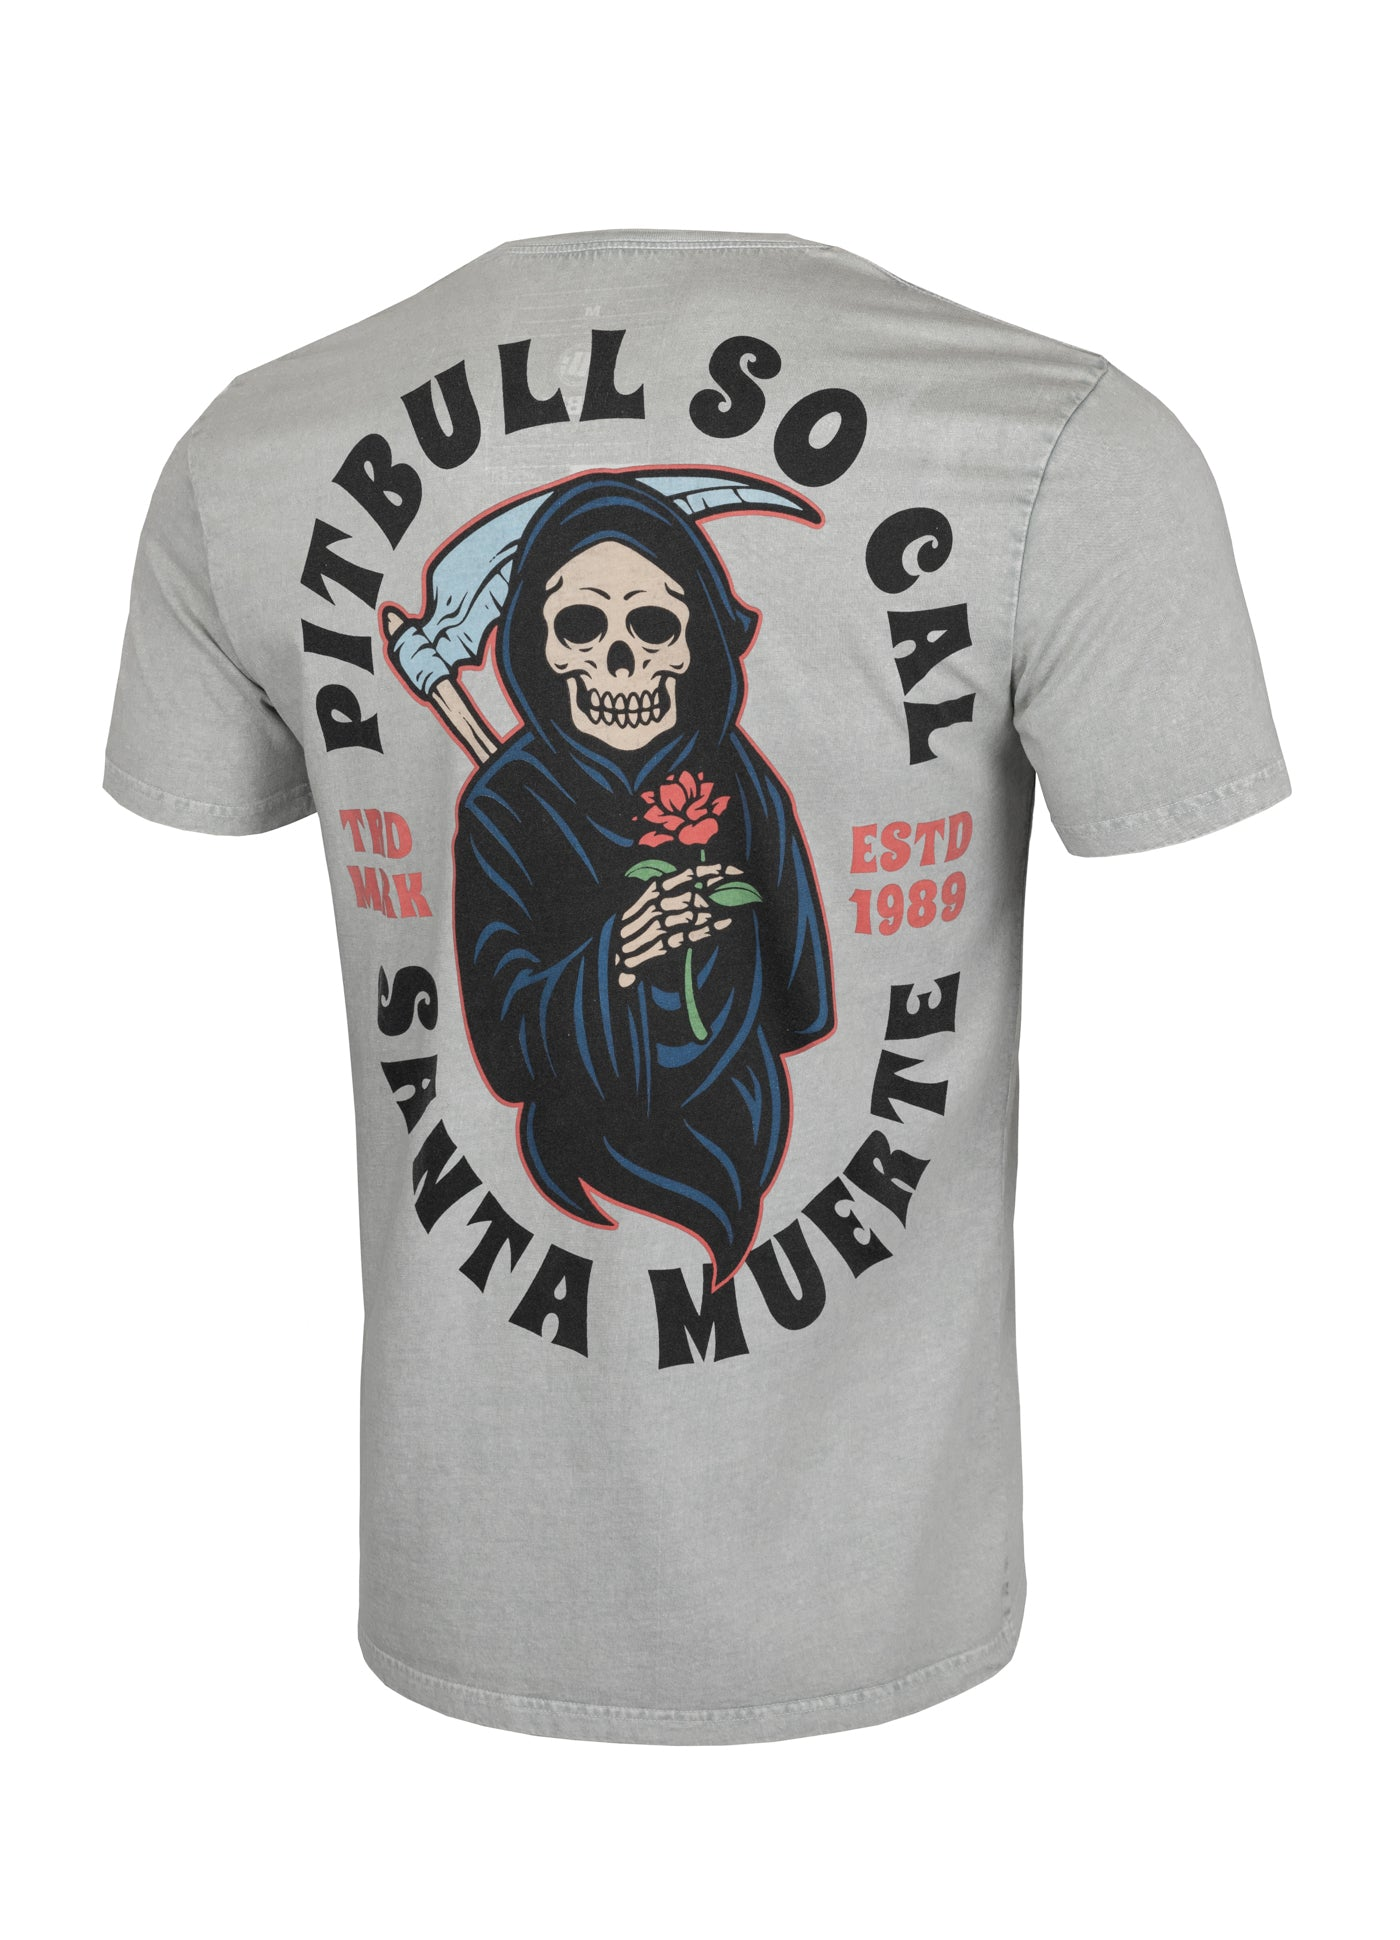 T-shirt Middleweight SANTA MUERTE Grey - Pitbull West Coast  UK Store